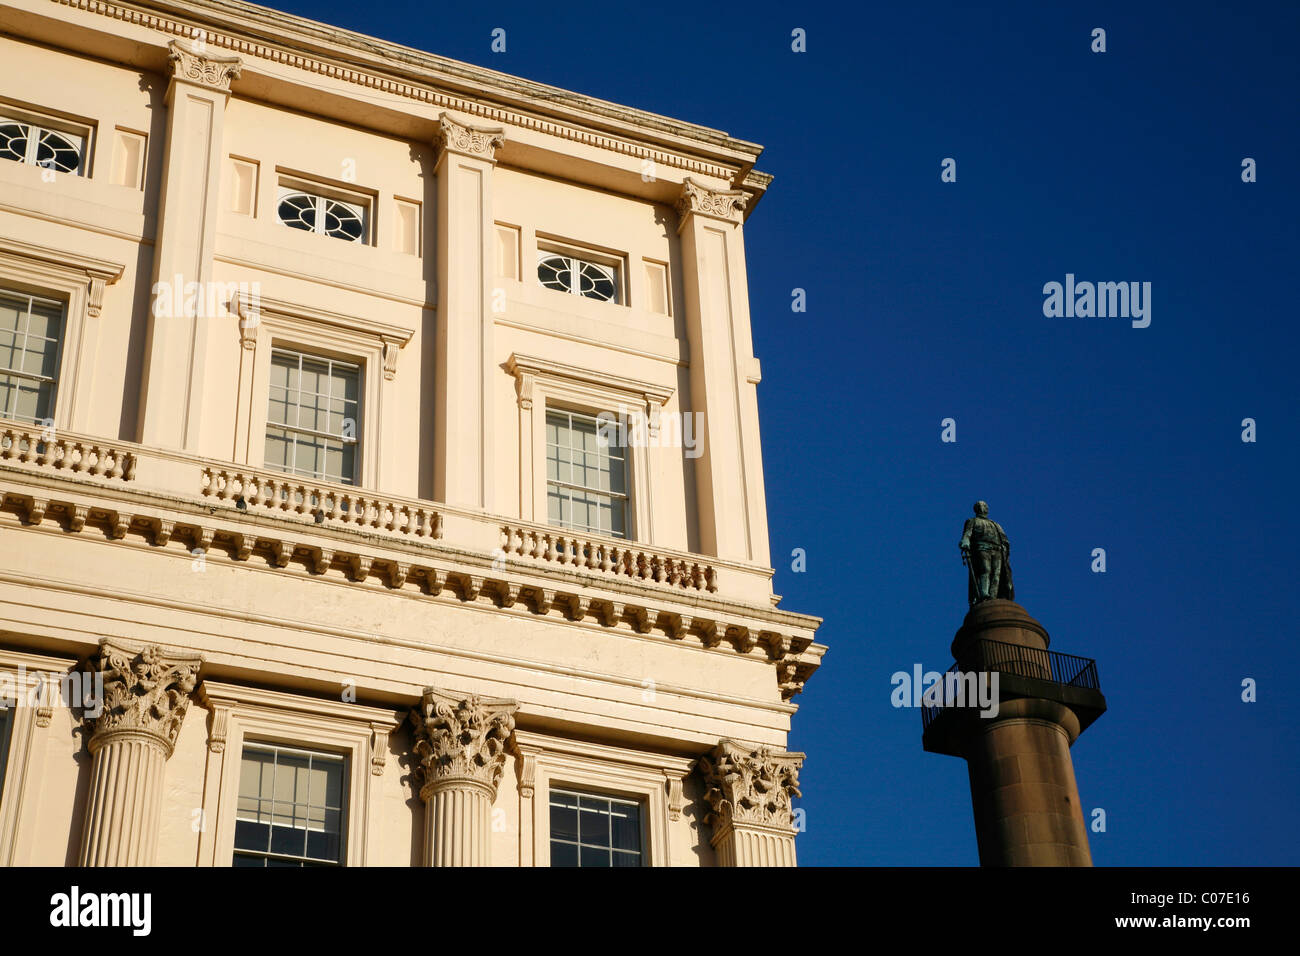 View past Carlton House Terrace to the Duke of York column on The Mall, St James's, London, UK - Stock Image